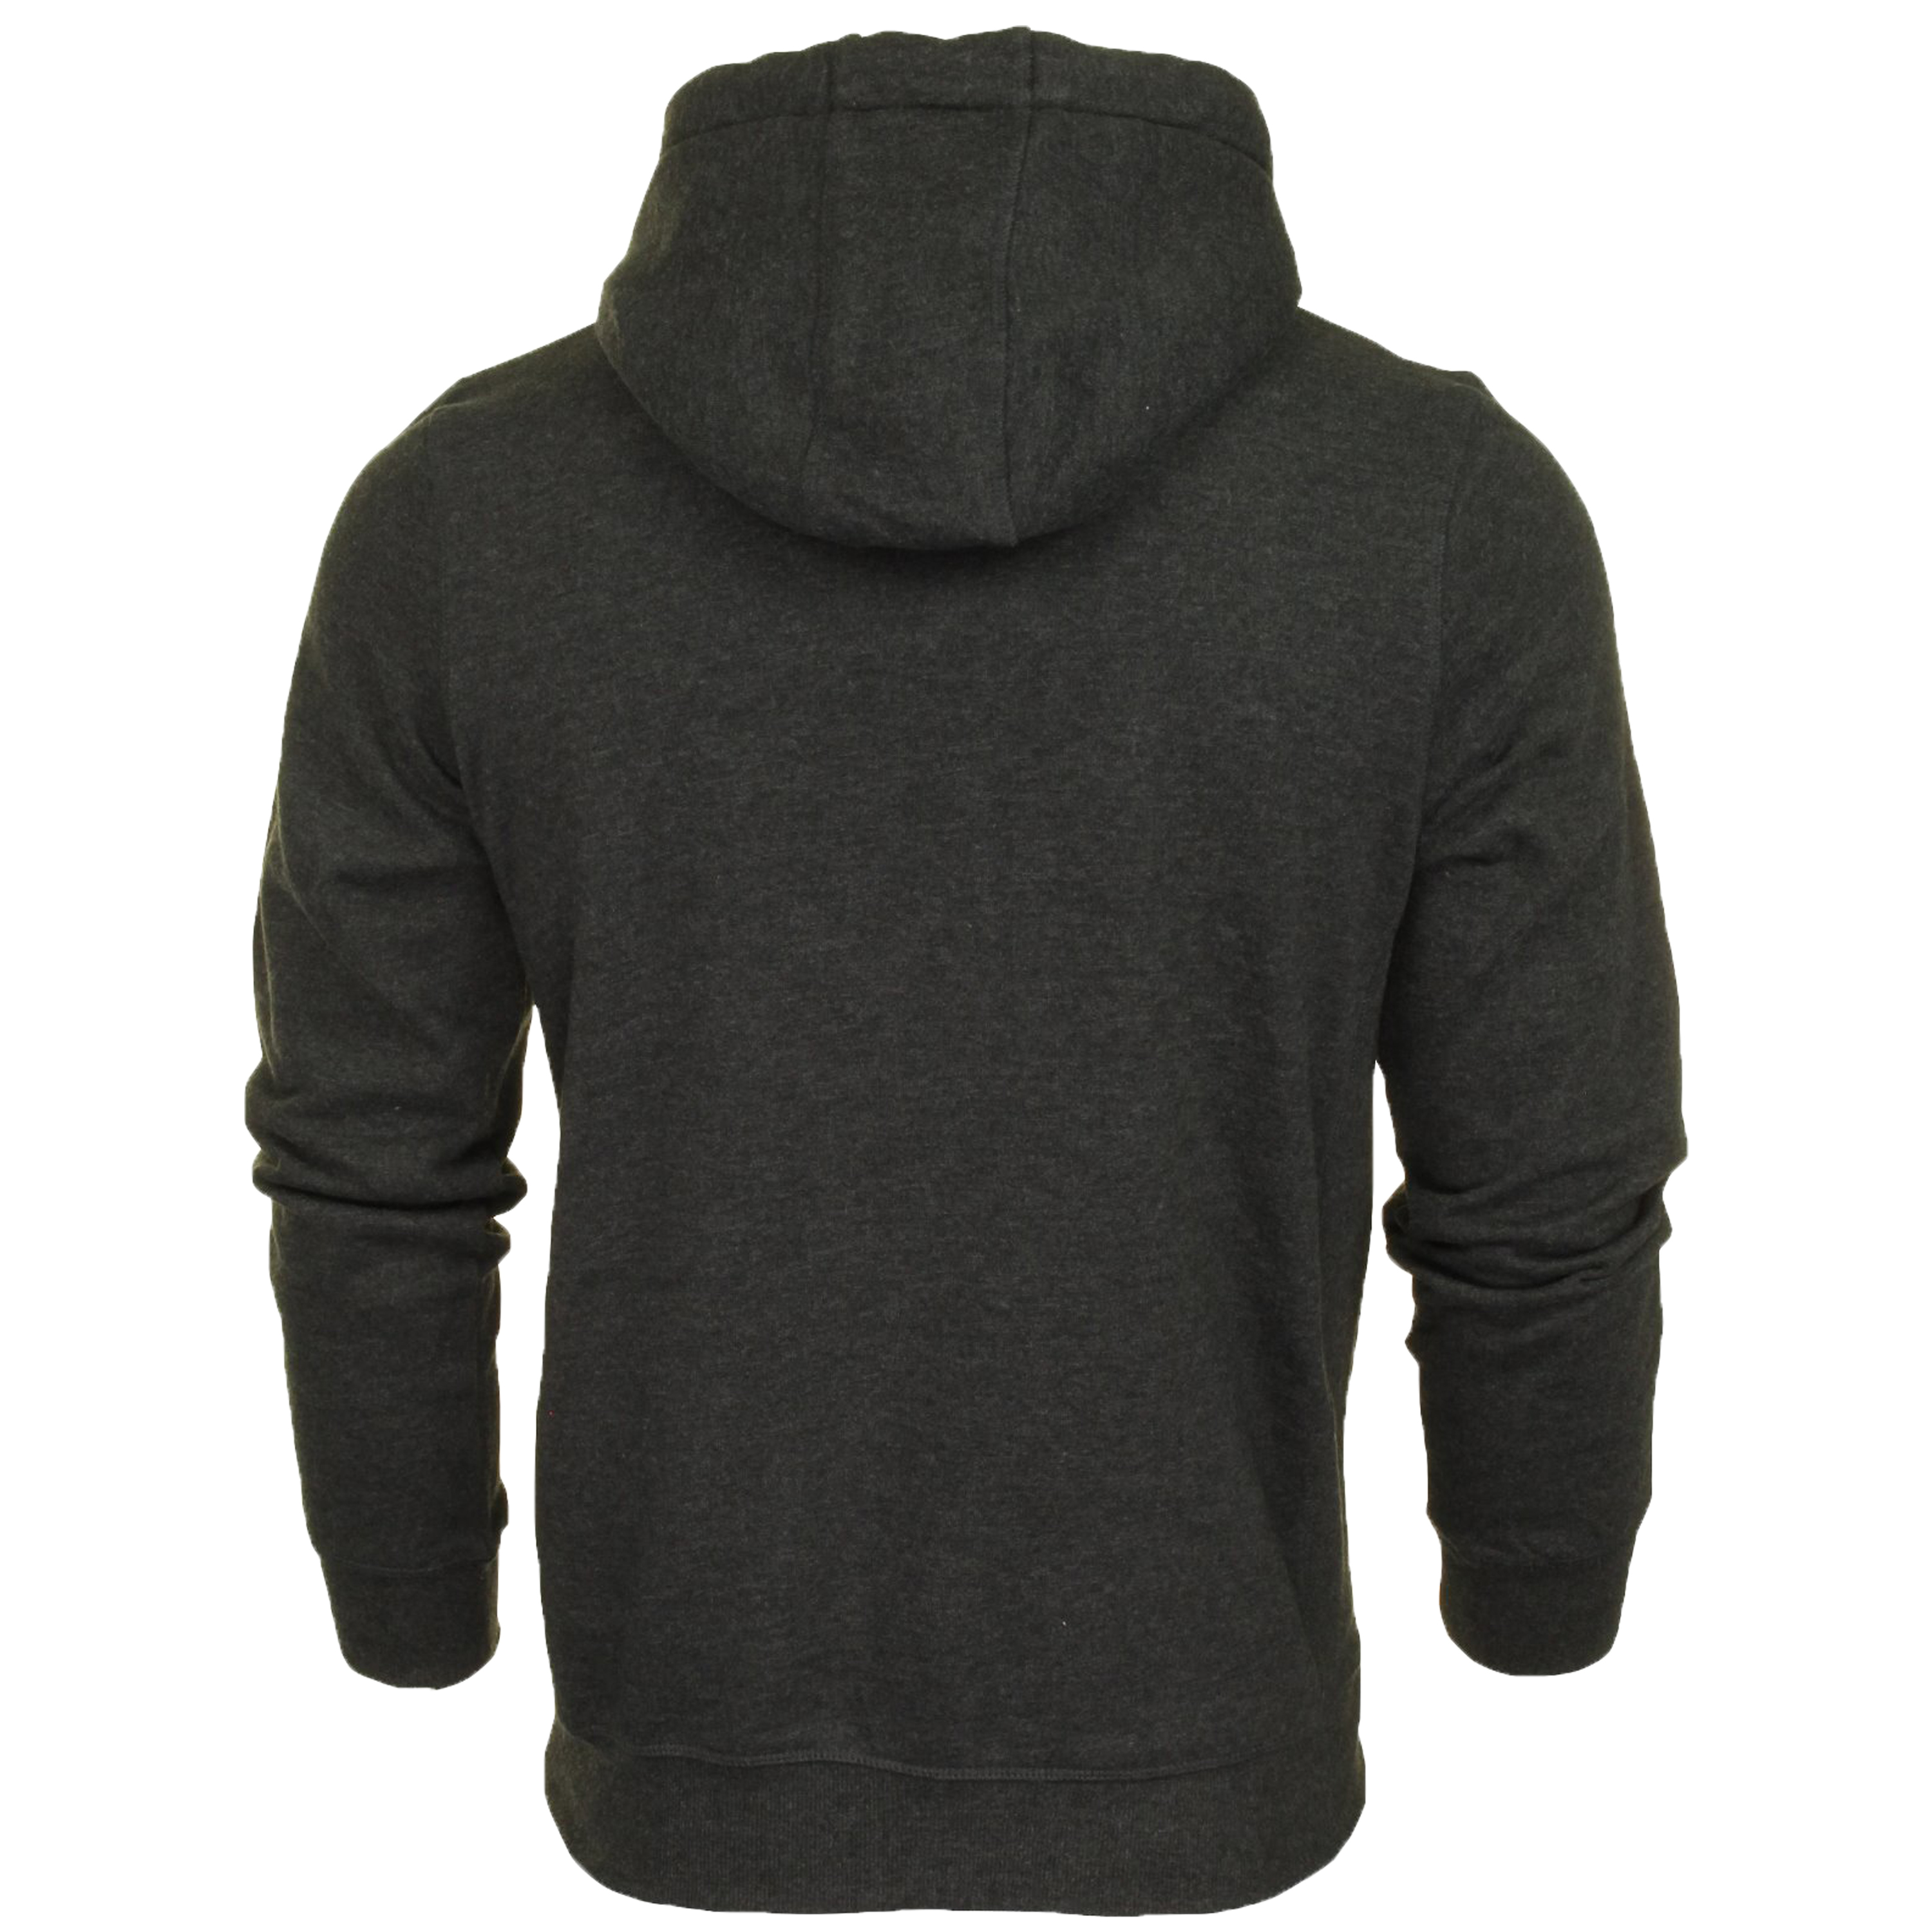 Mens-Sweatshirt-Tokyo-Laundry-Sherpa-Fleece-Hooded-Top-Pullover-Winter-Fashion thumbnail 3